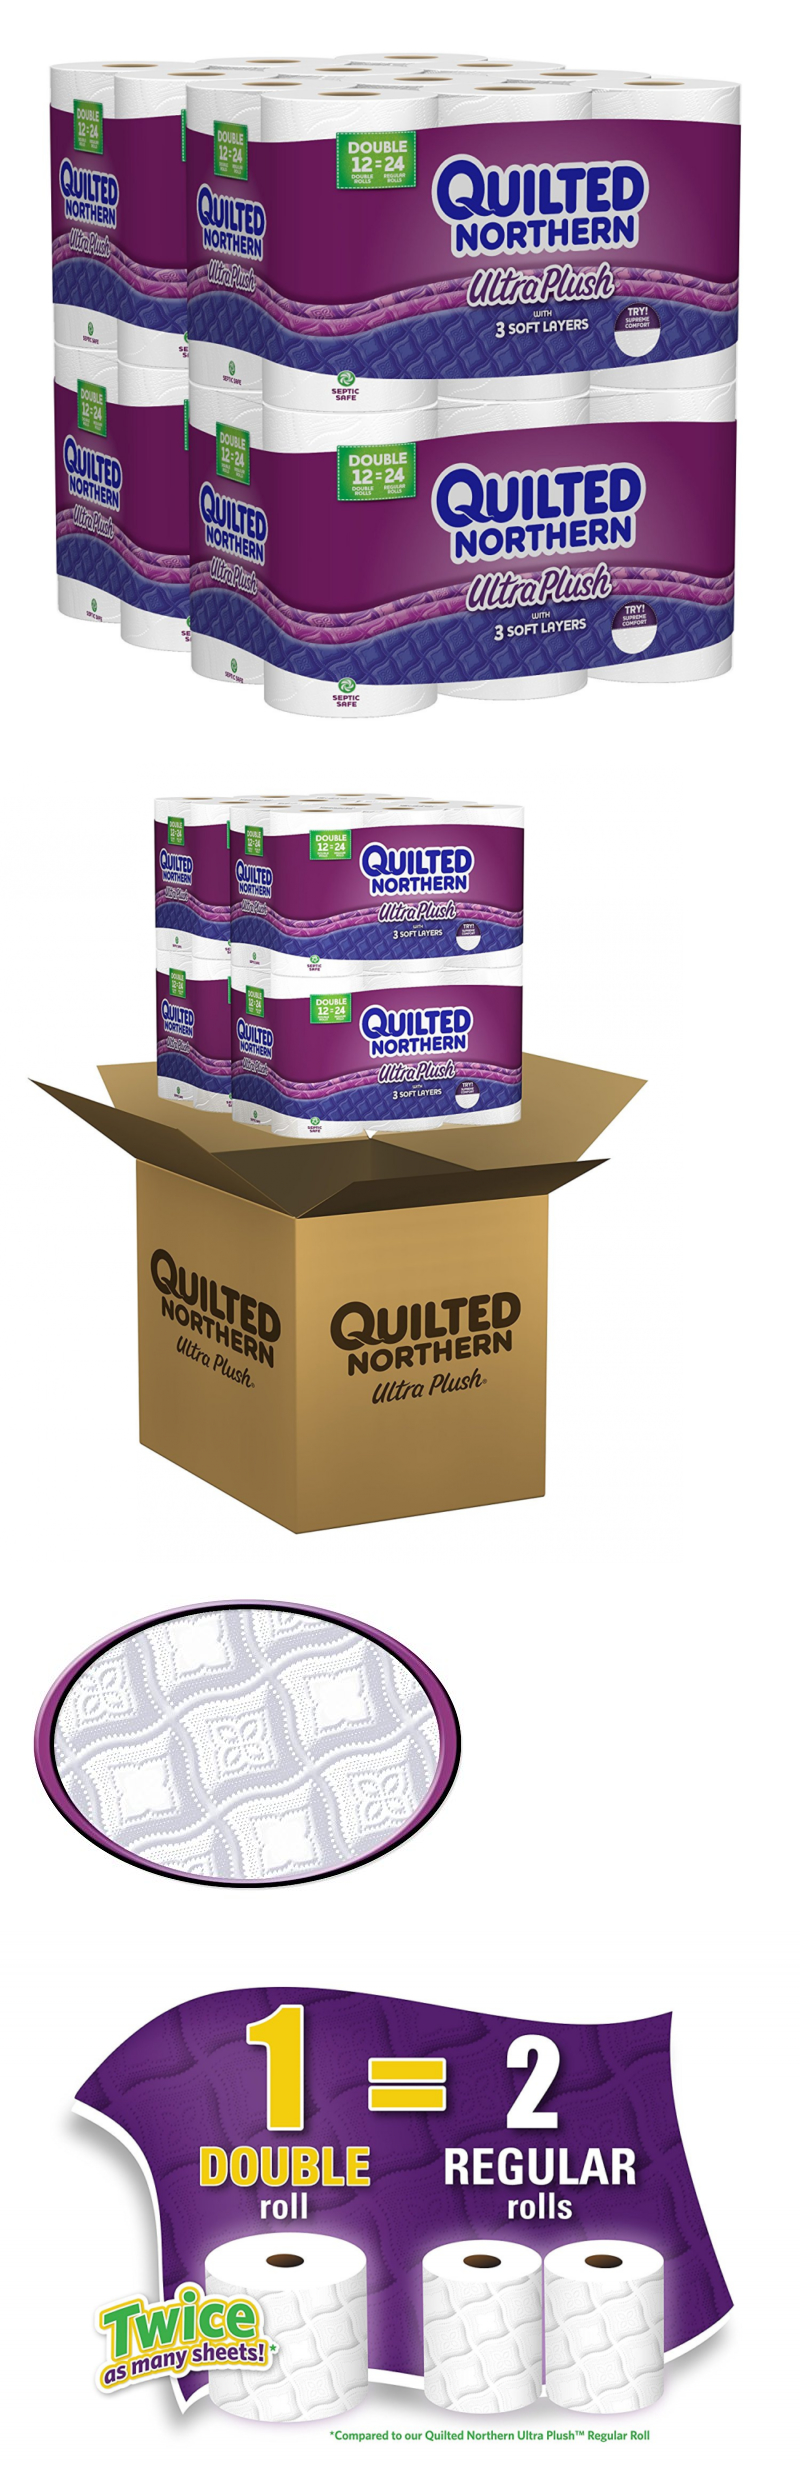 Toilet Paper 179204 Quilted Northern Ultra Plush Double Rolls